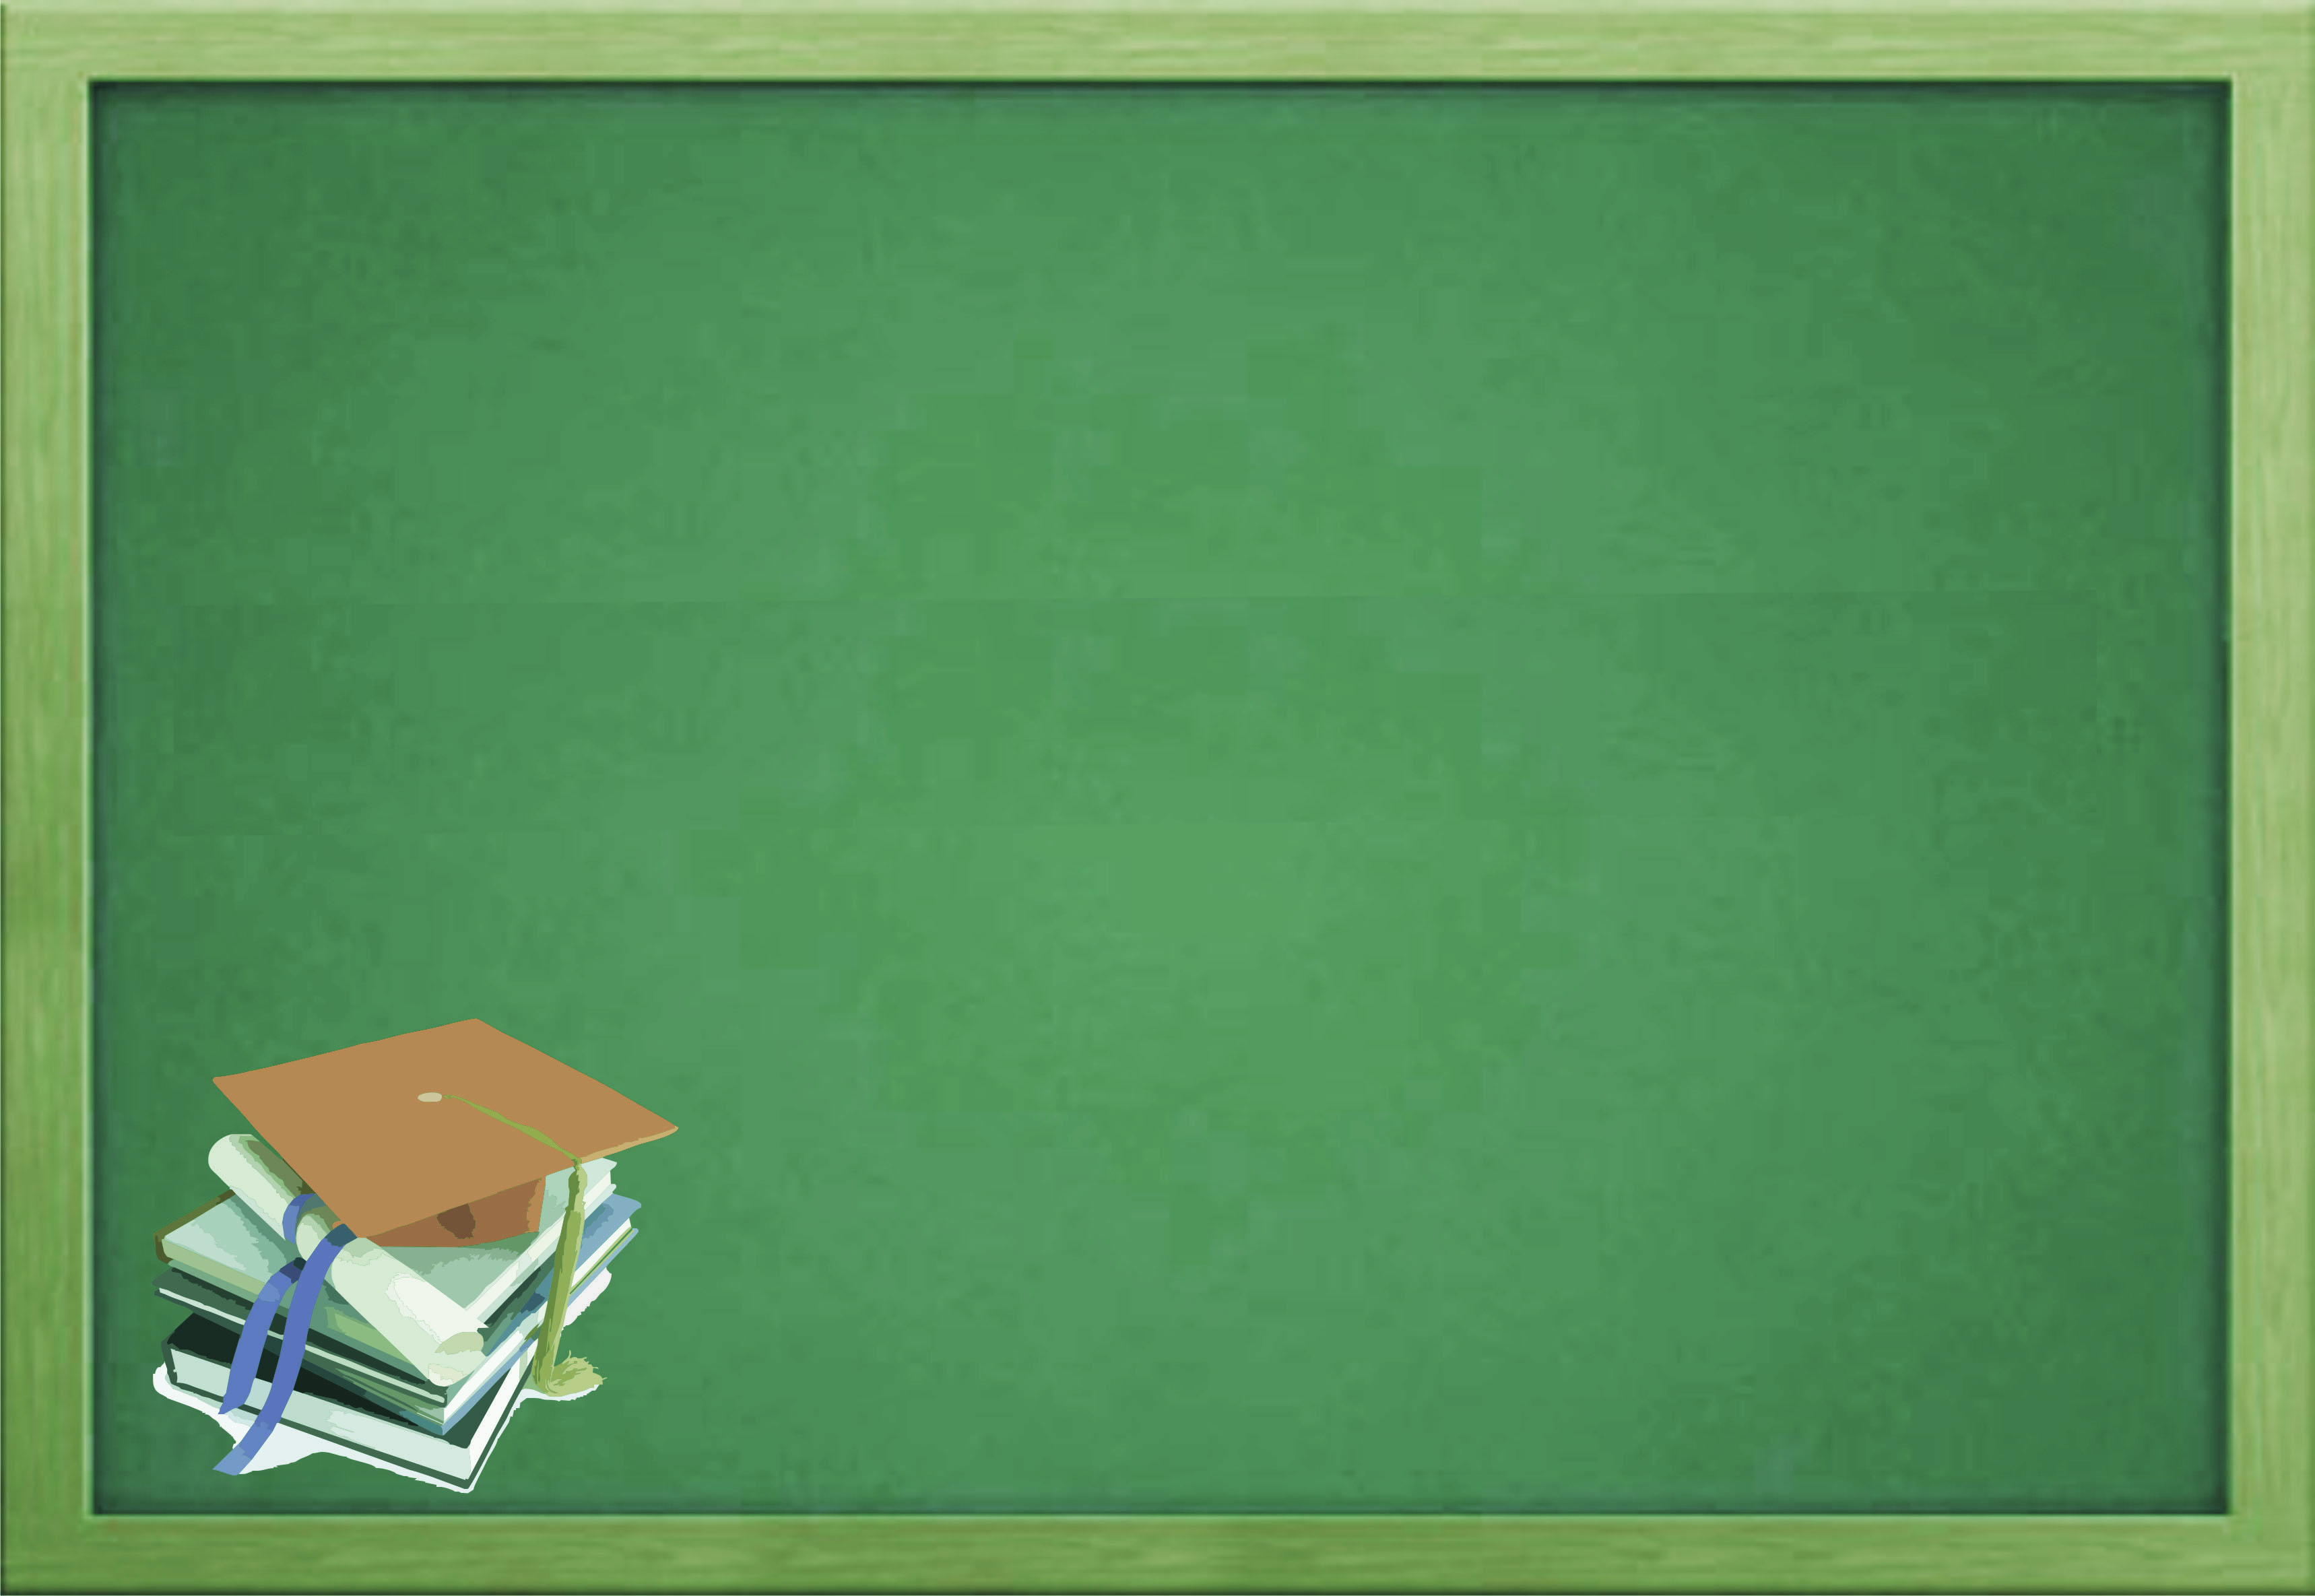 School Powerpoint Background   PowerPoint Backgrounds for 3437x2370